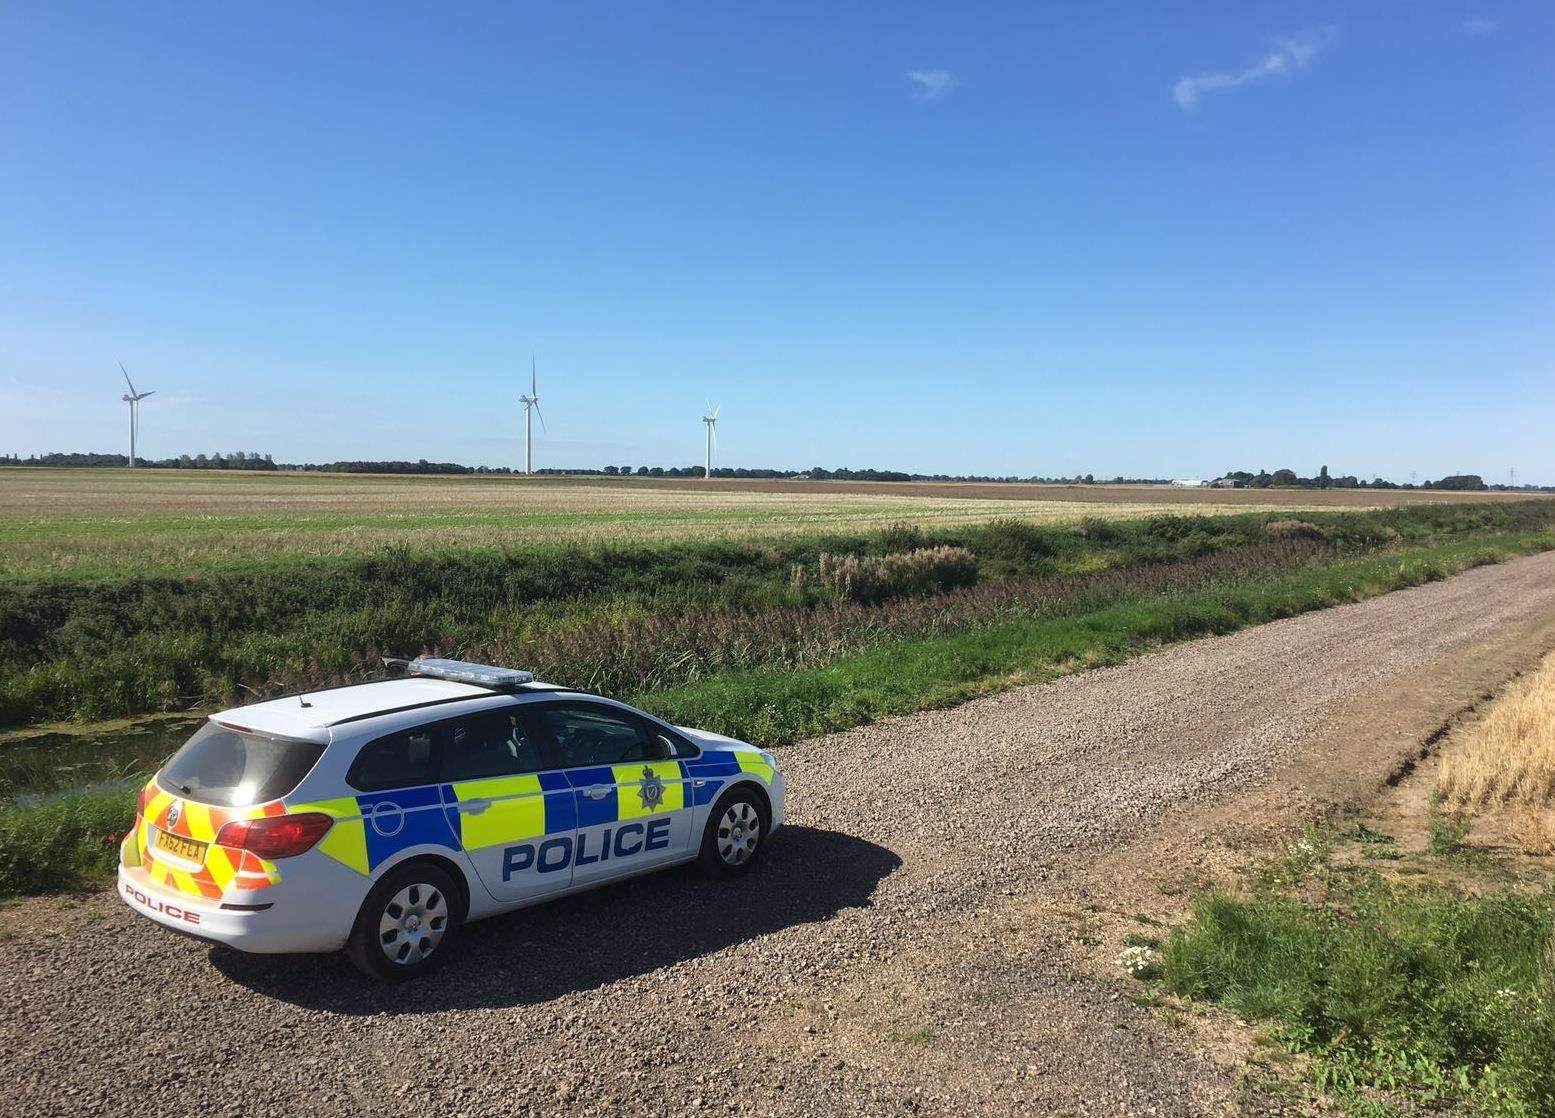 The latest figures from Operation Galileo show a 41 per cent drop in reported incidents for the last four months of 2018. Photo supplied by Lincolnshire Police.